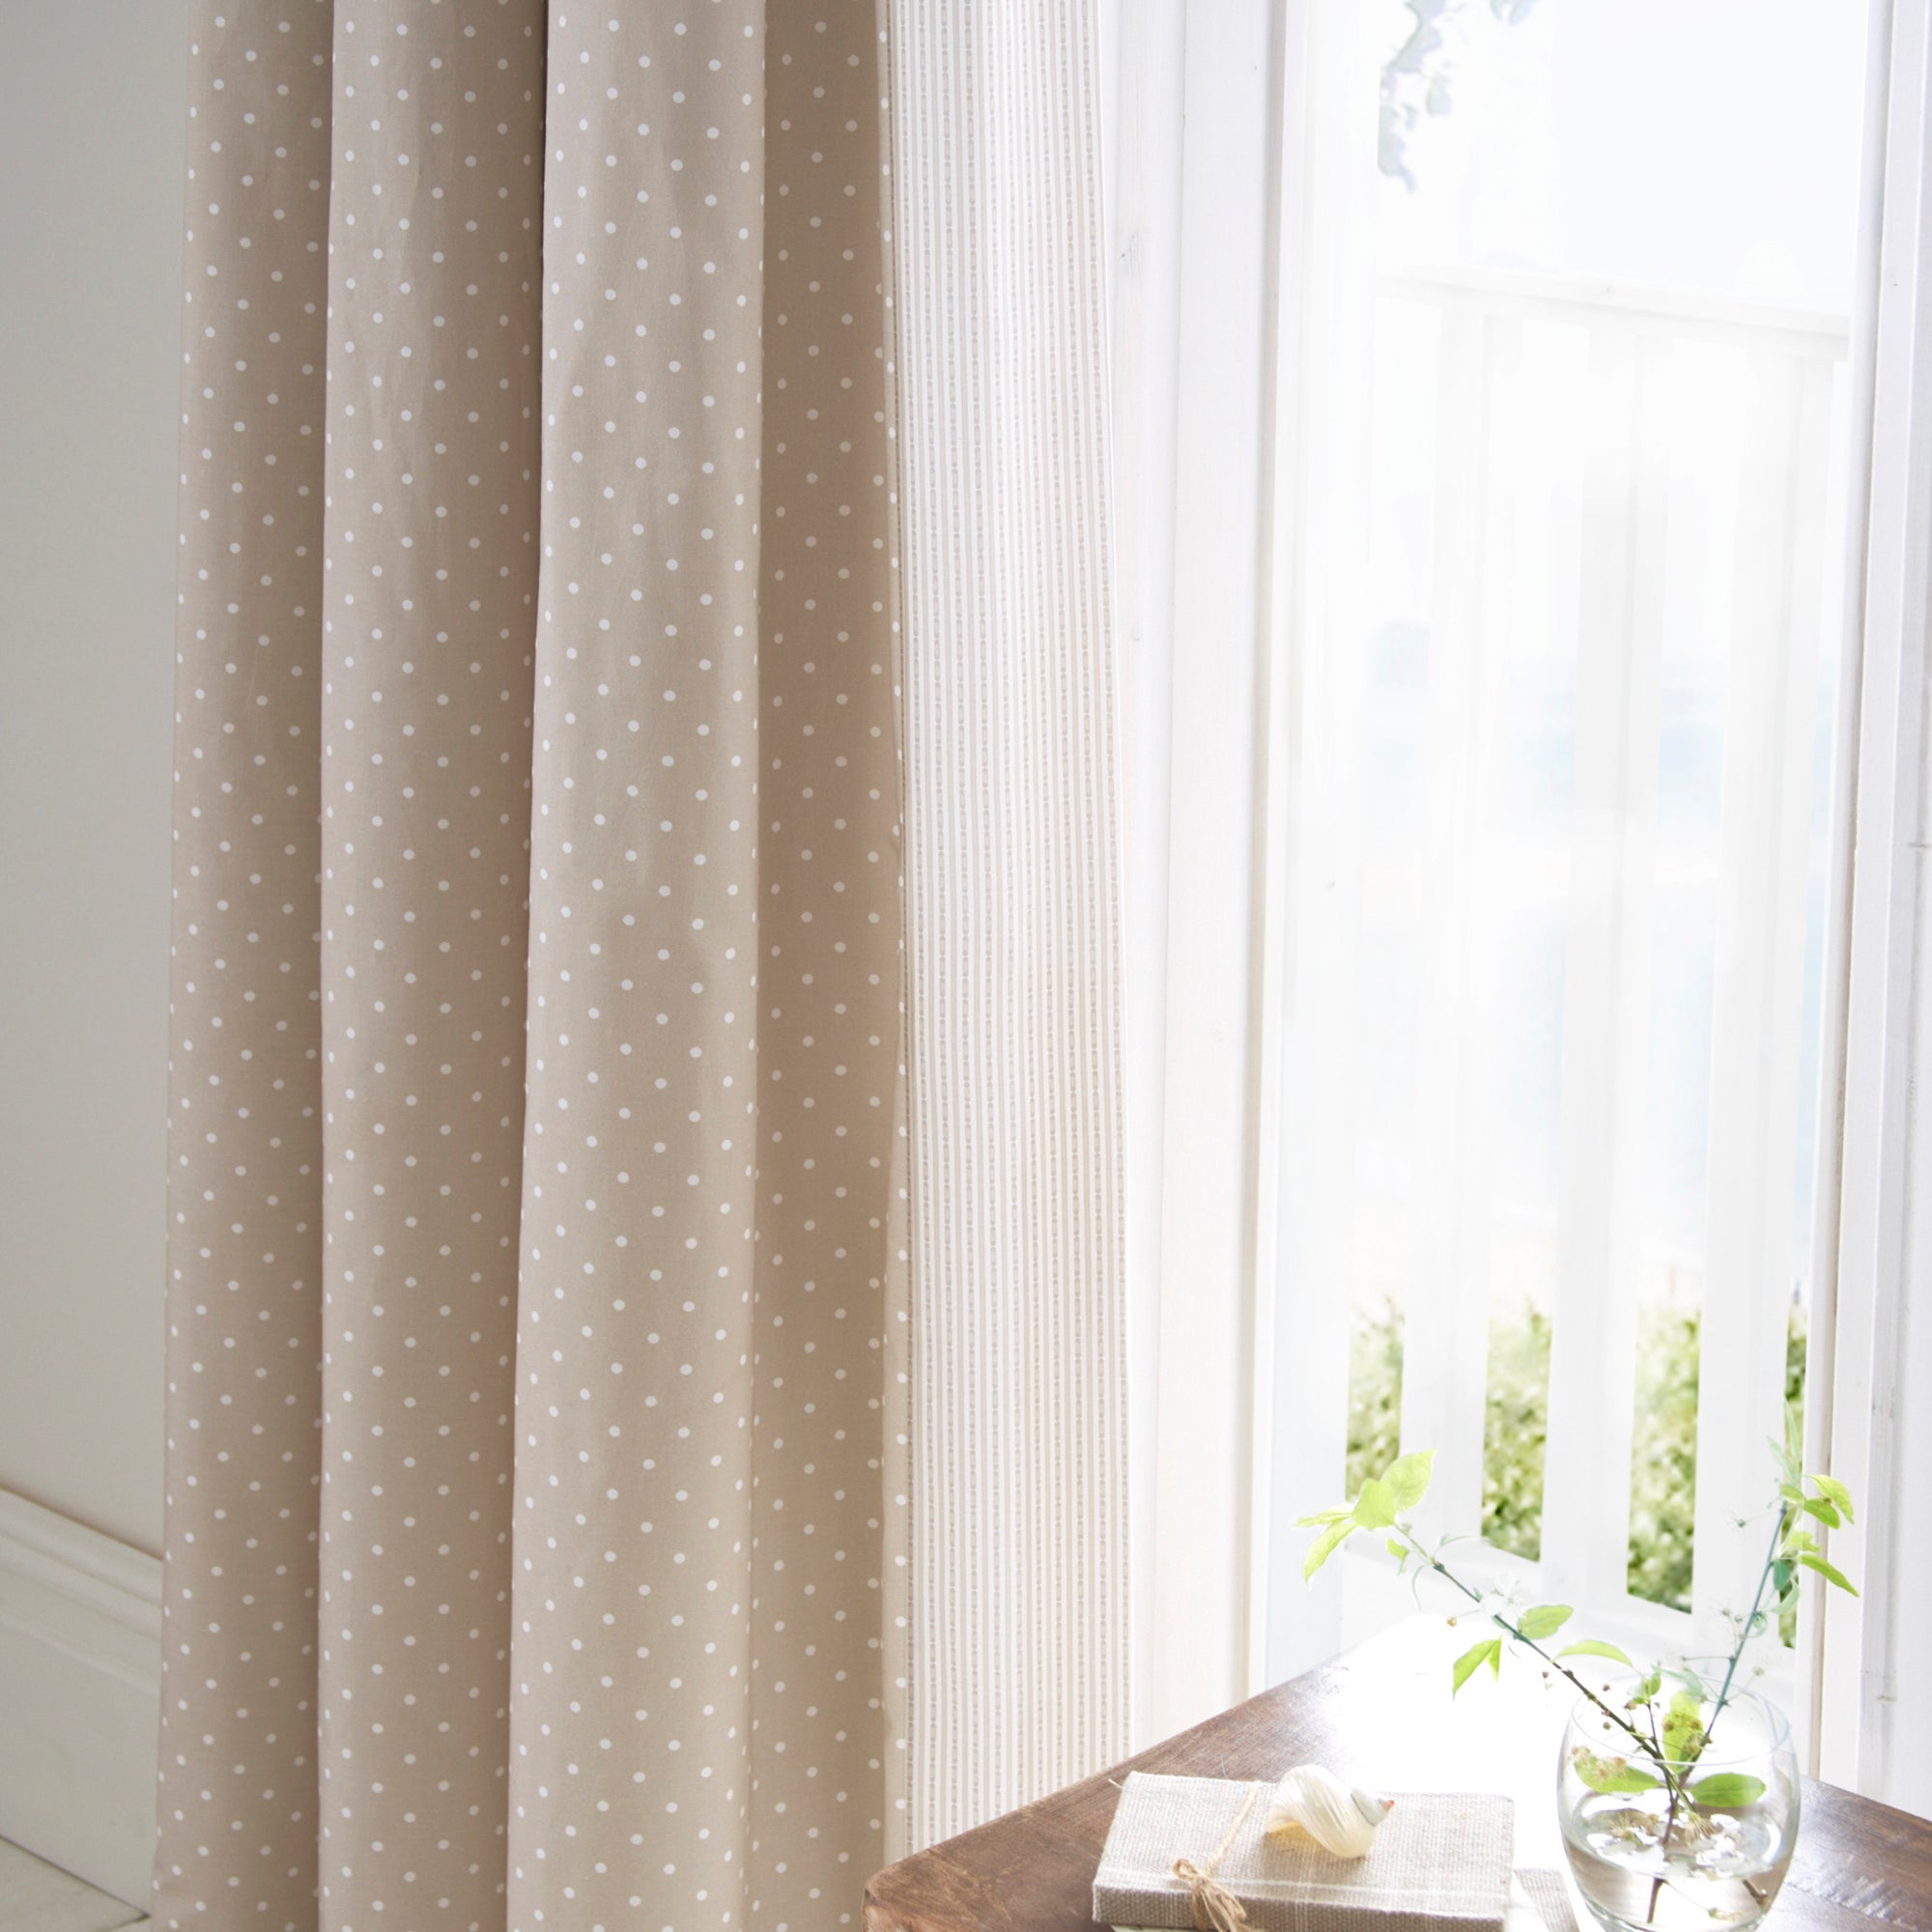 Dorma Mink Capri Collection Curtains